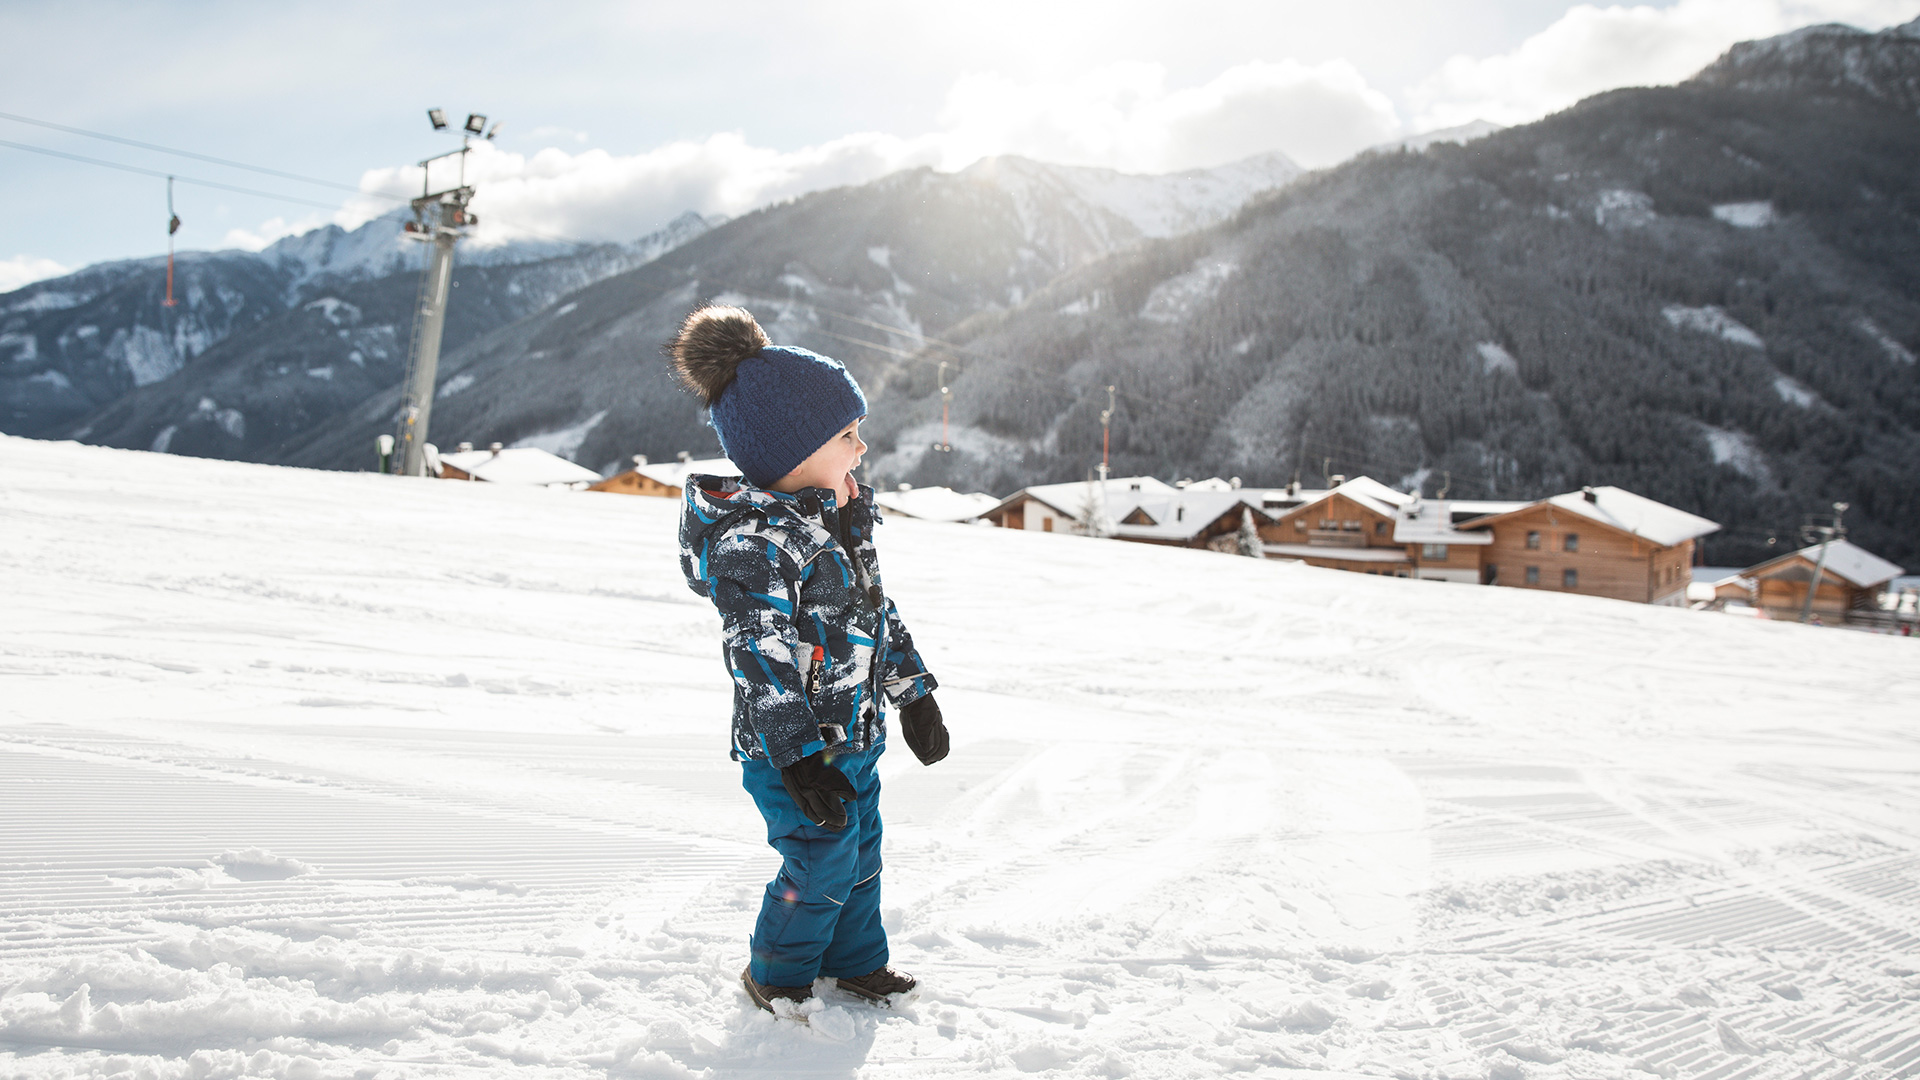 Small child in ski suit standing on ski slope